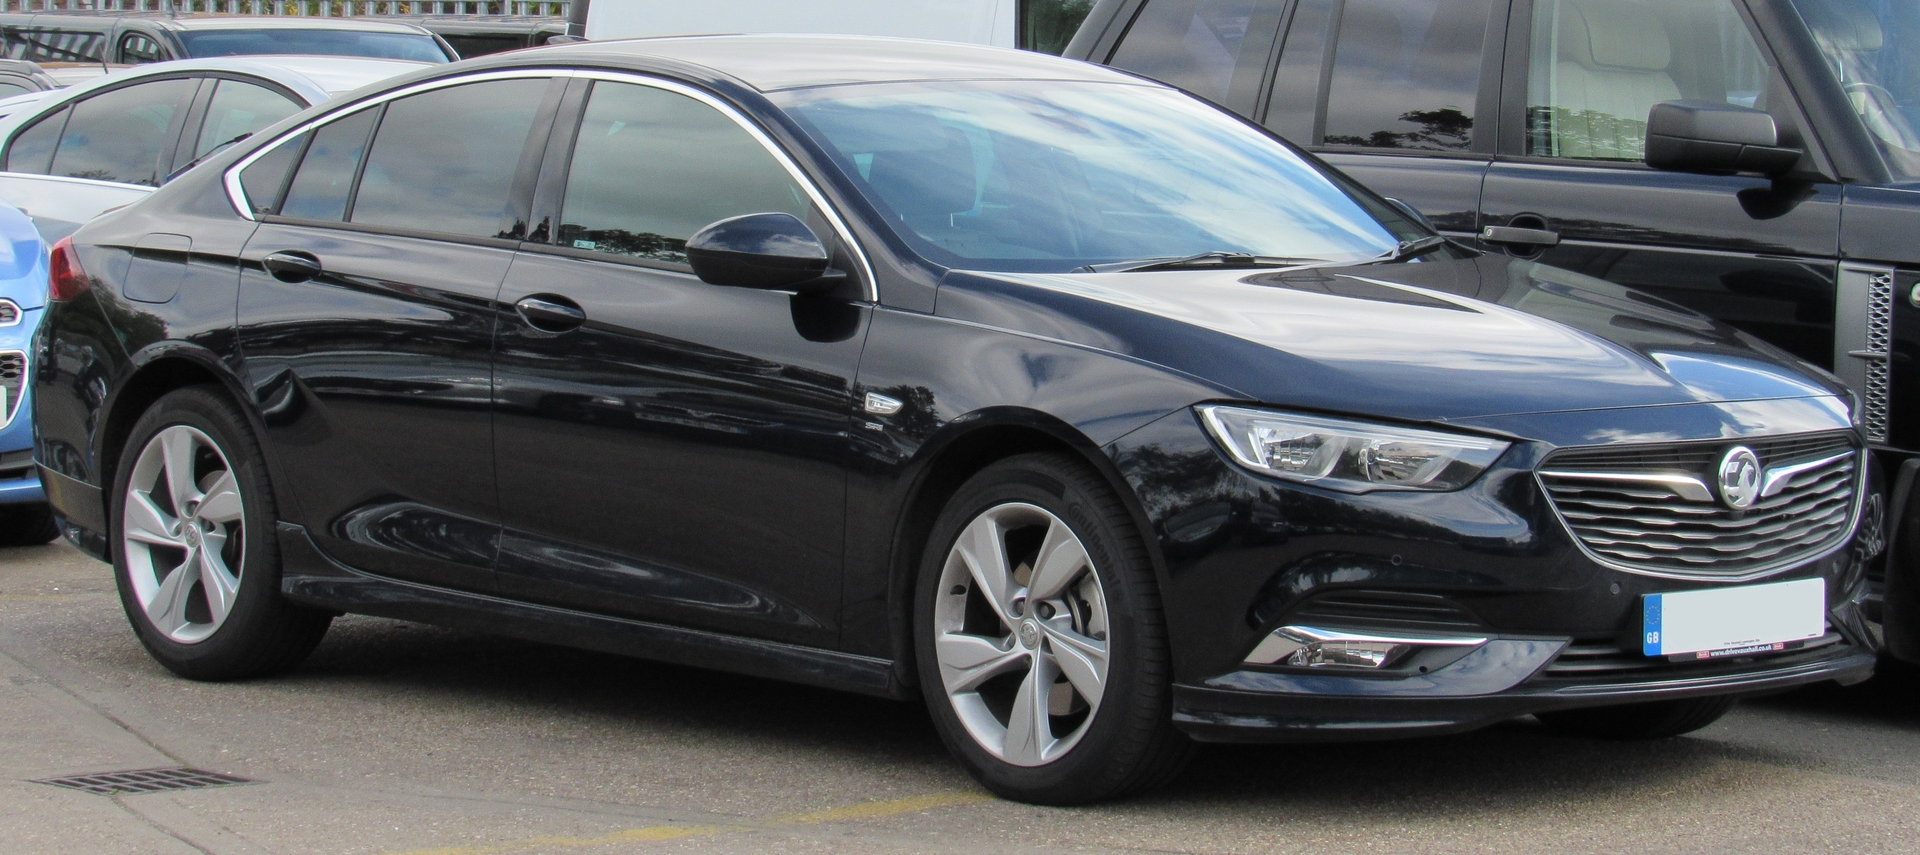 vauxhall insignia used car warranty